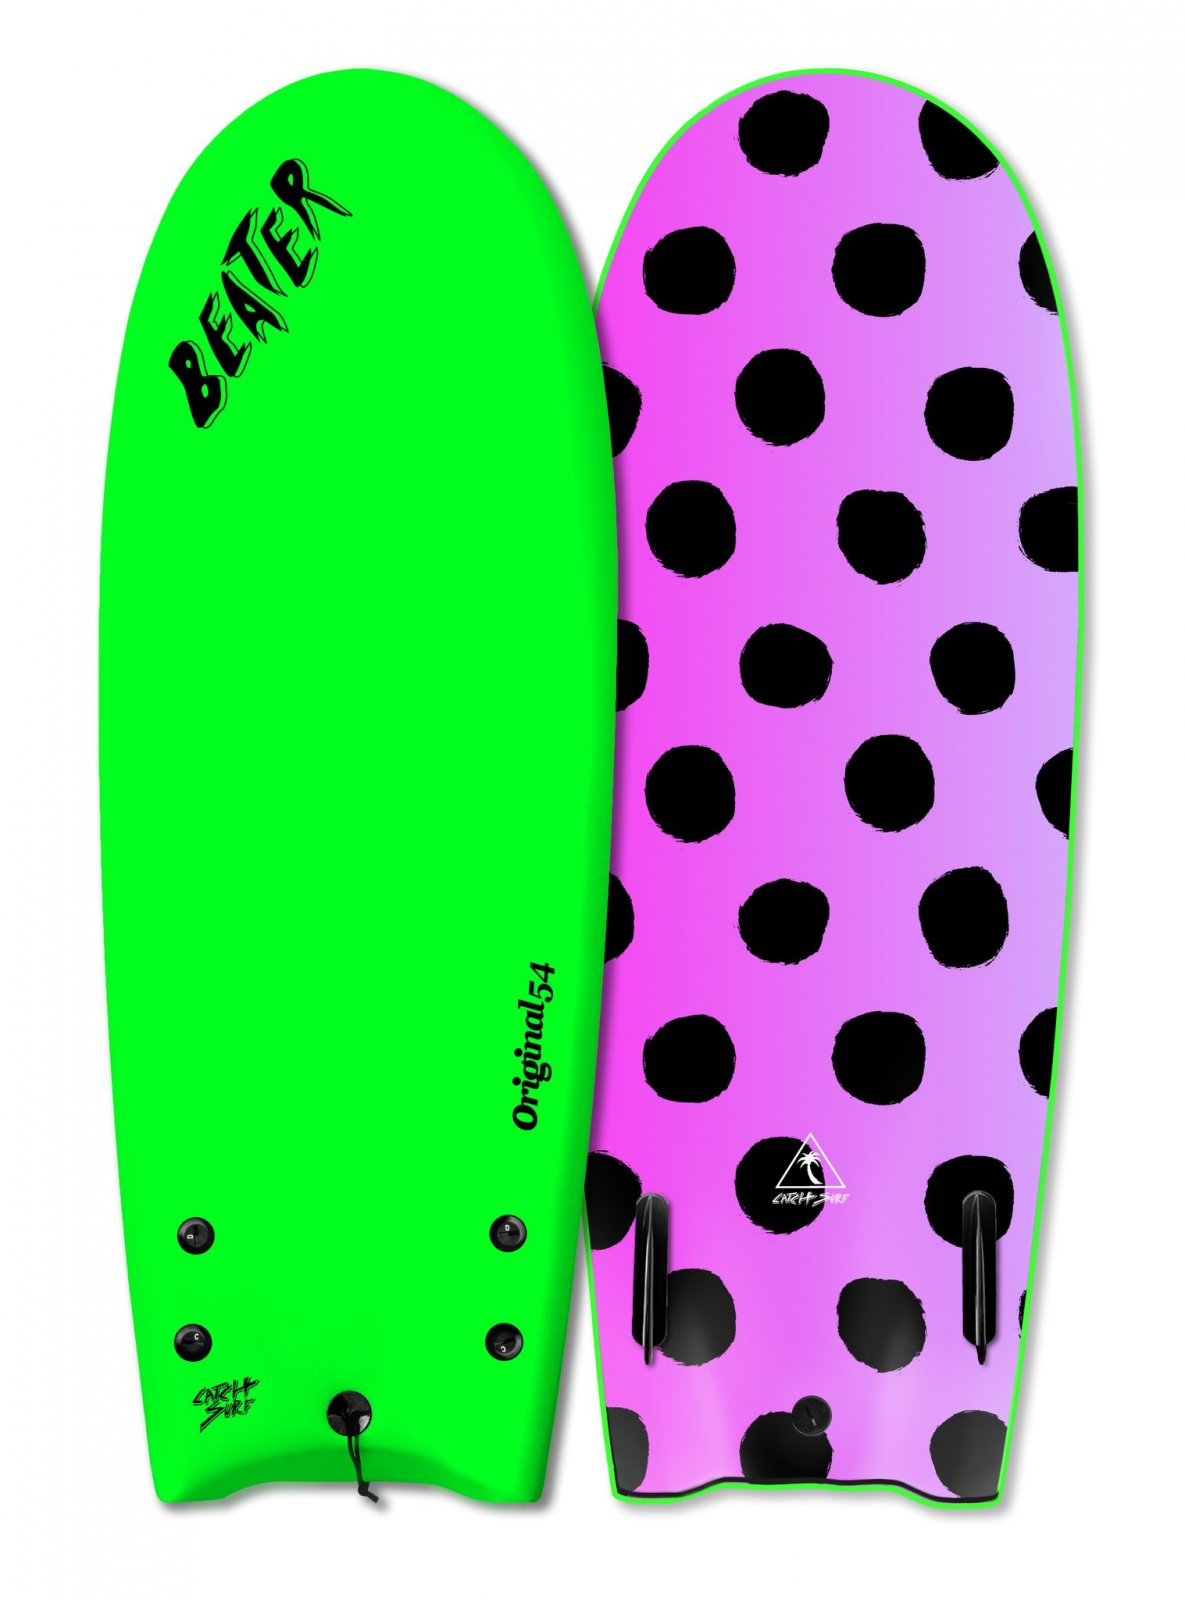 Beater Original 54 - Twin Fin 18